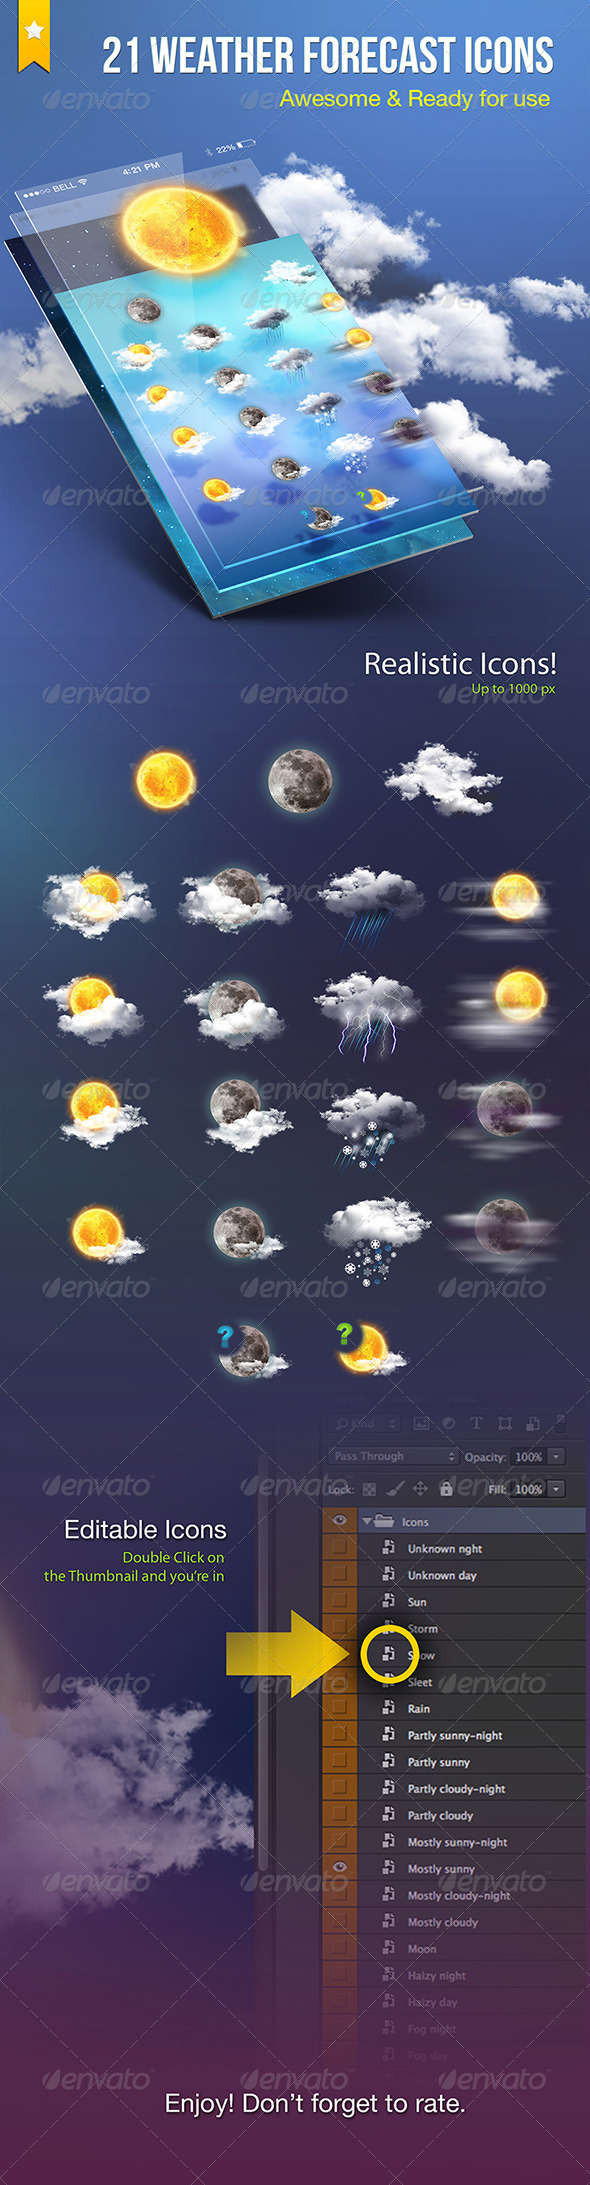 Weather Forecast Icons - Icons